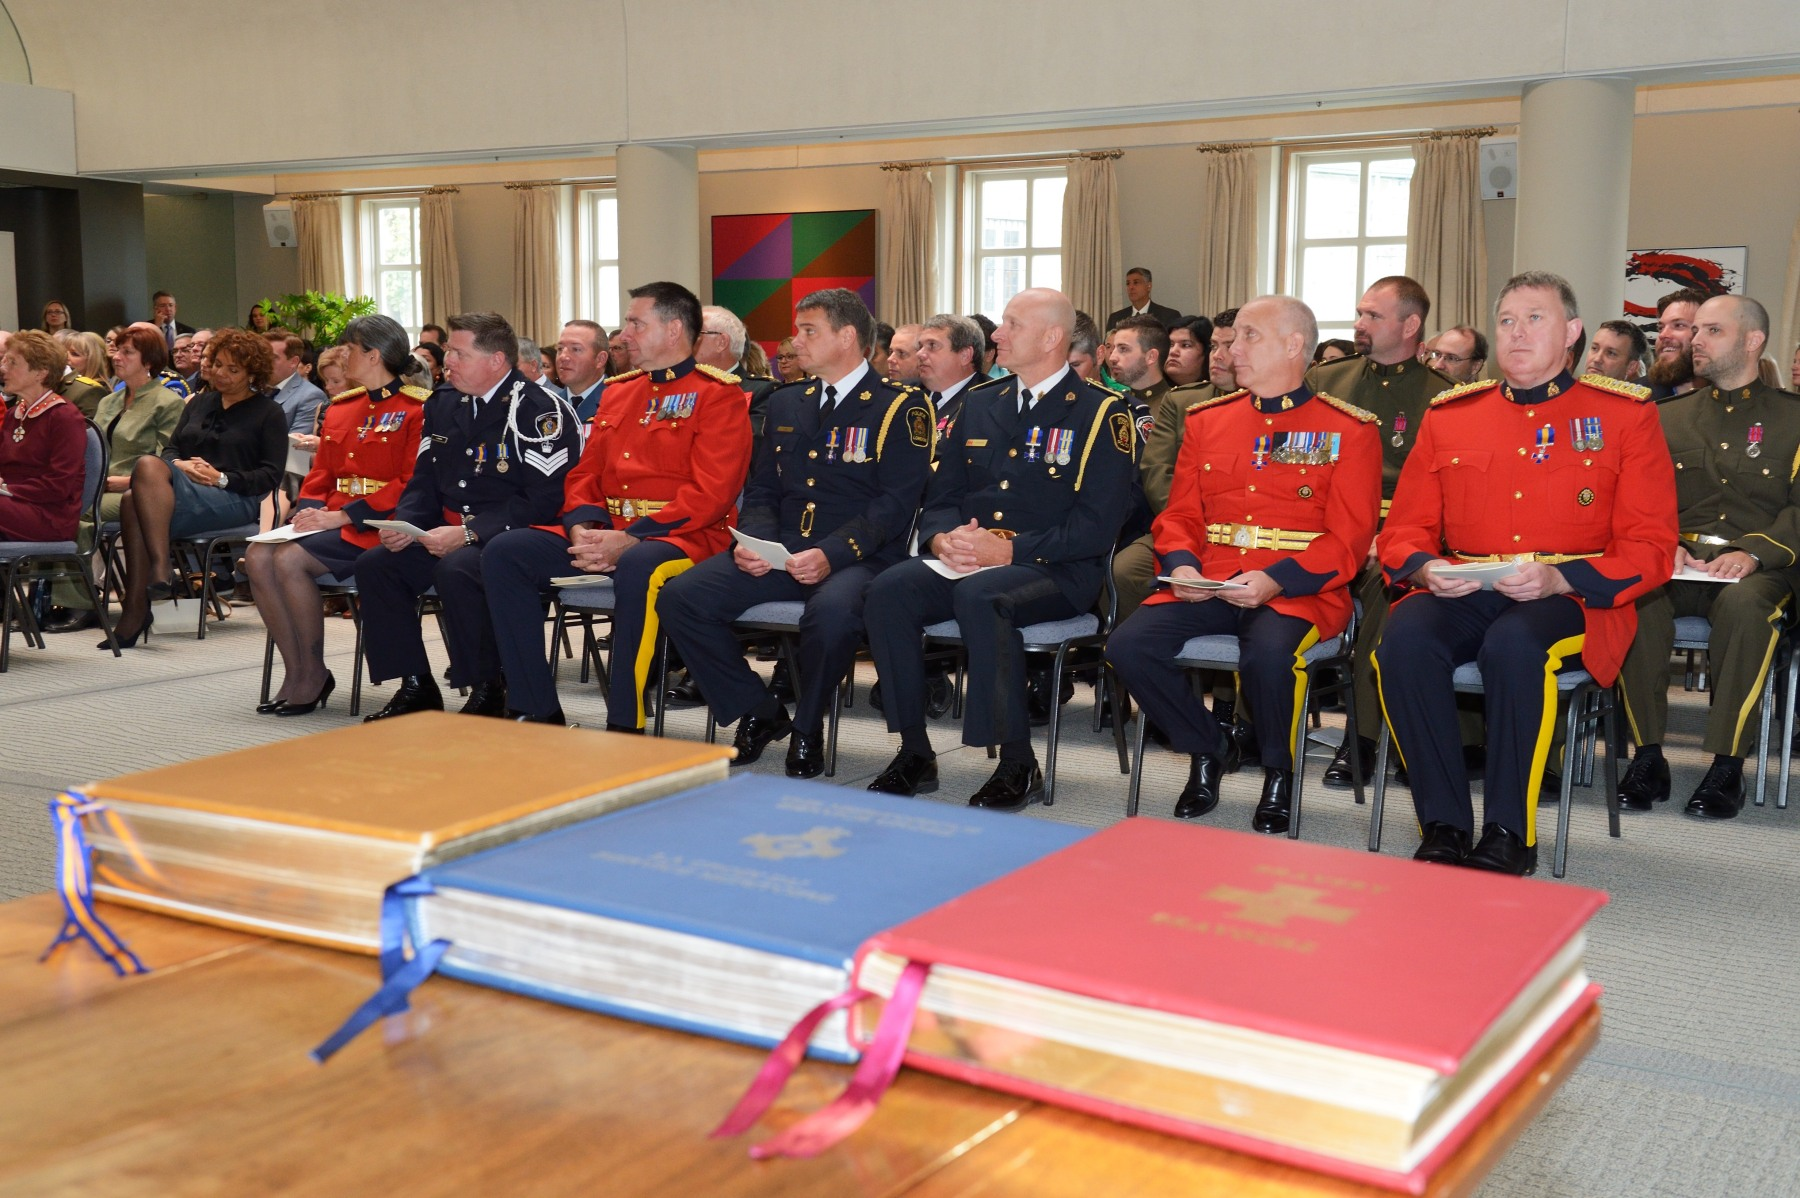 During the morning ceremony, the Governor General presented the following honours: the Order of Merit of the Police Forces; the Meritorious Service Decorations (Military Division); the Decorations for Bravery; and the Polar Medal.